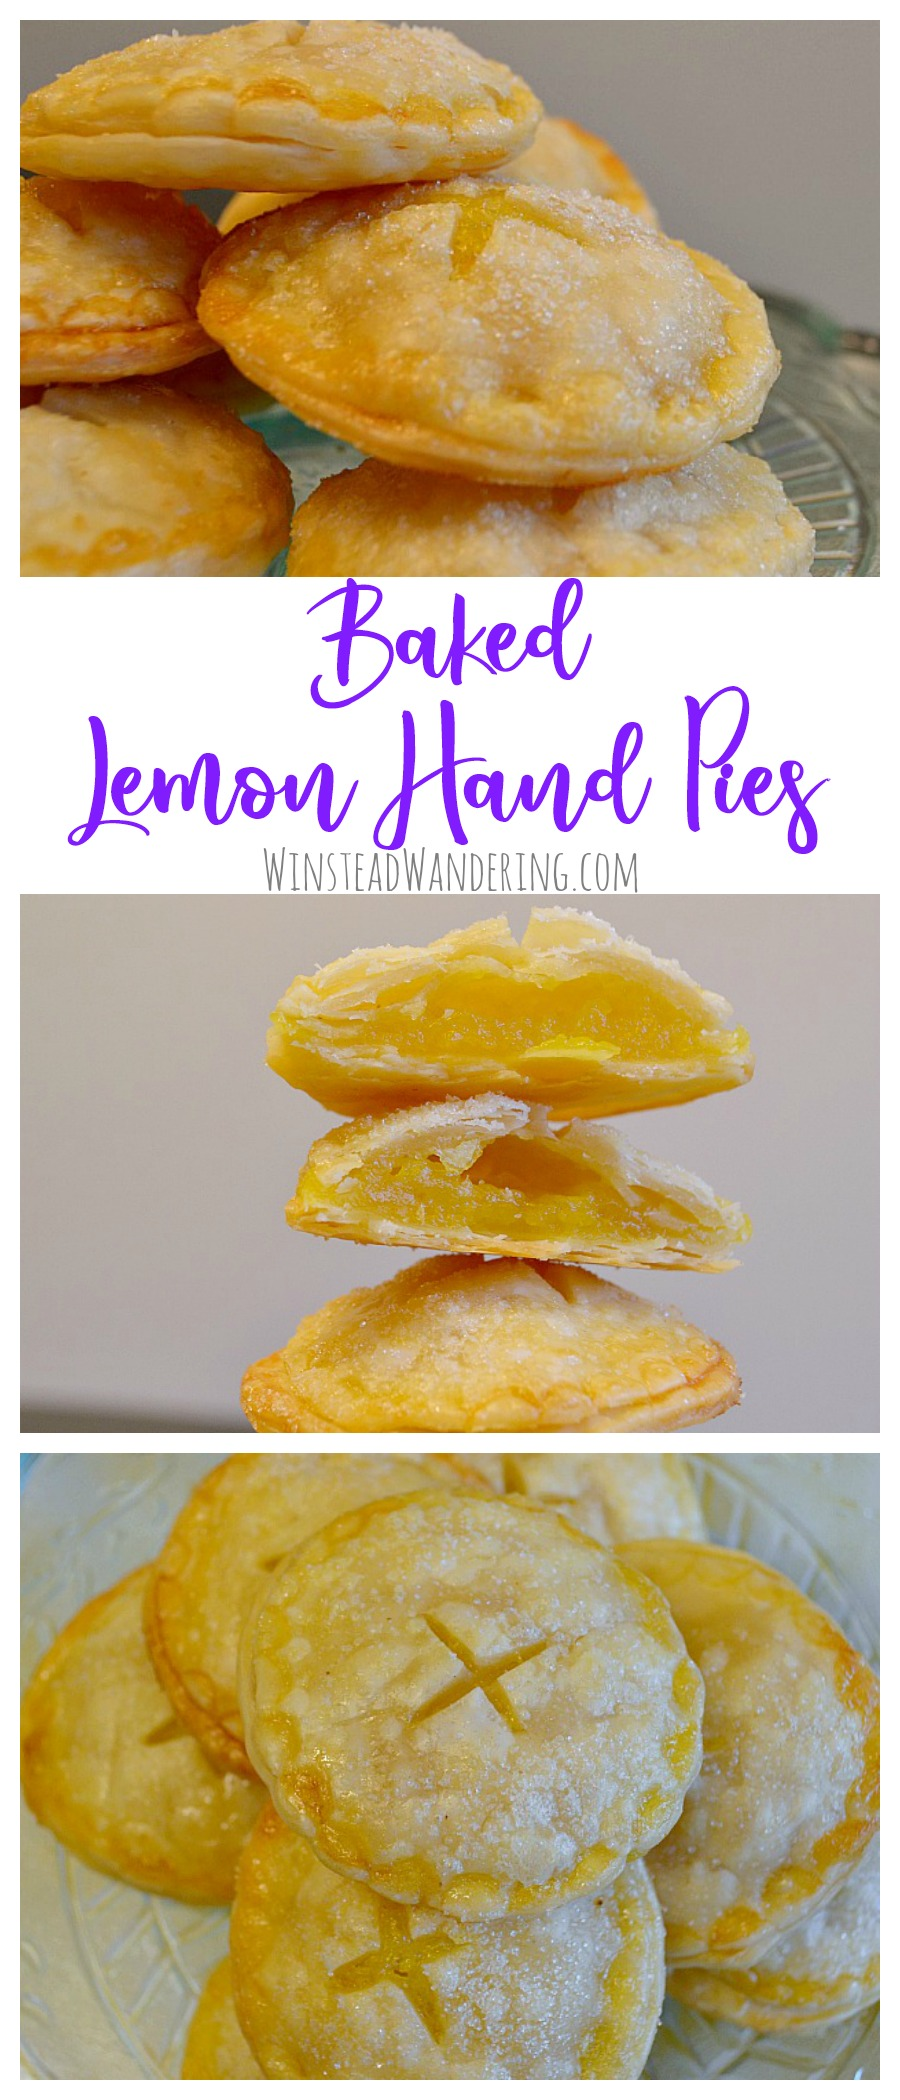 Filled with a perfectly sweet and tangy lemon curd and finished with a sprinkling of sugar, Baked Lemon Hand Pies are adorable, yummy, and super easy to make.